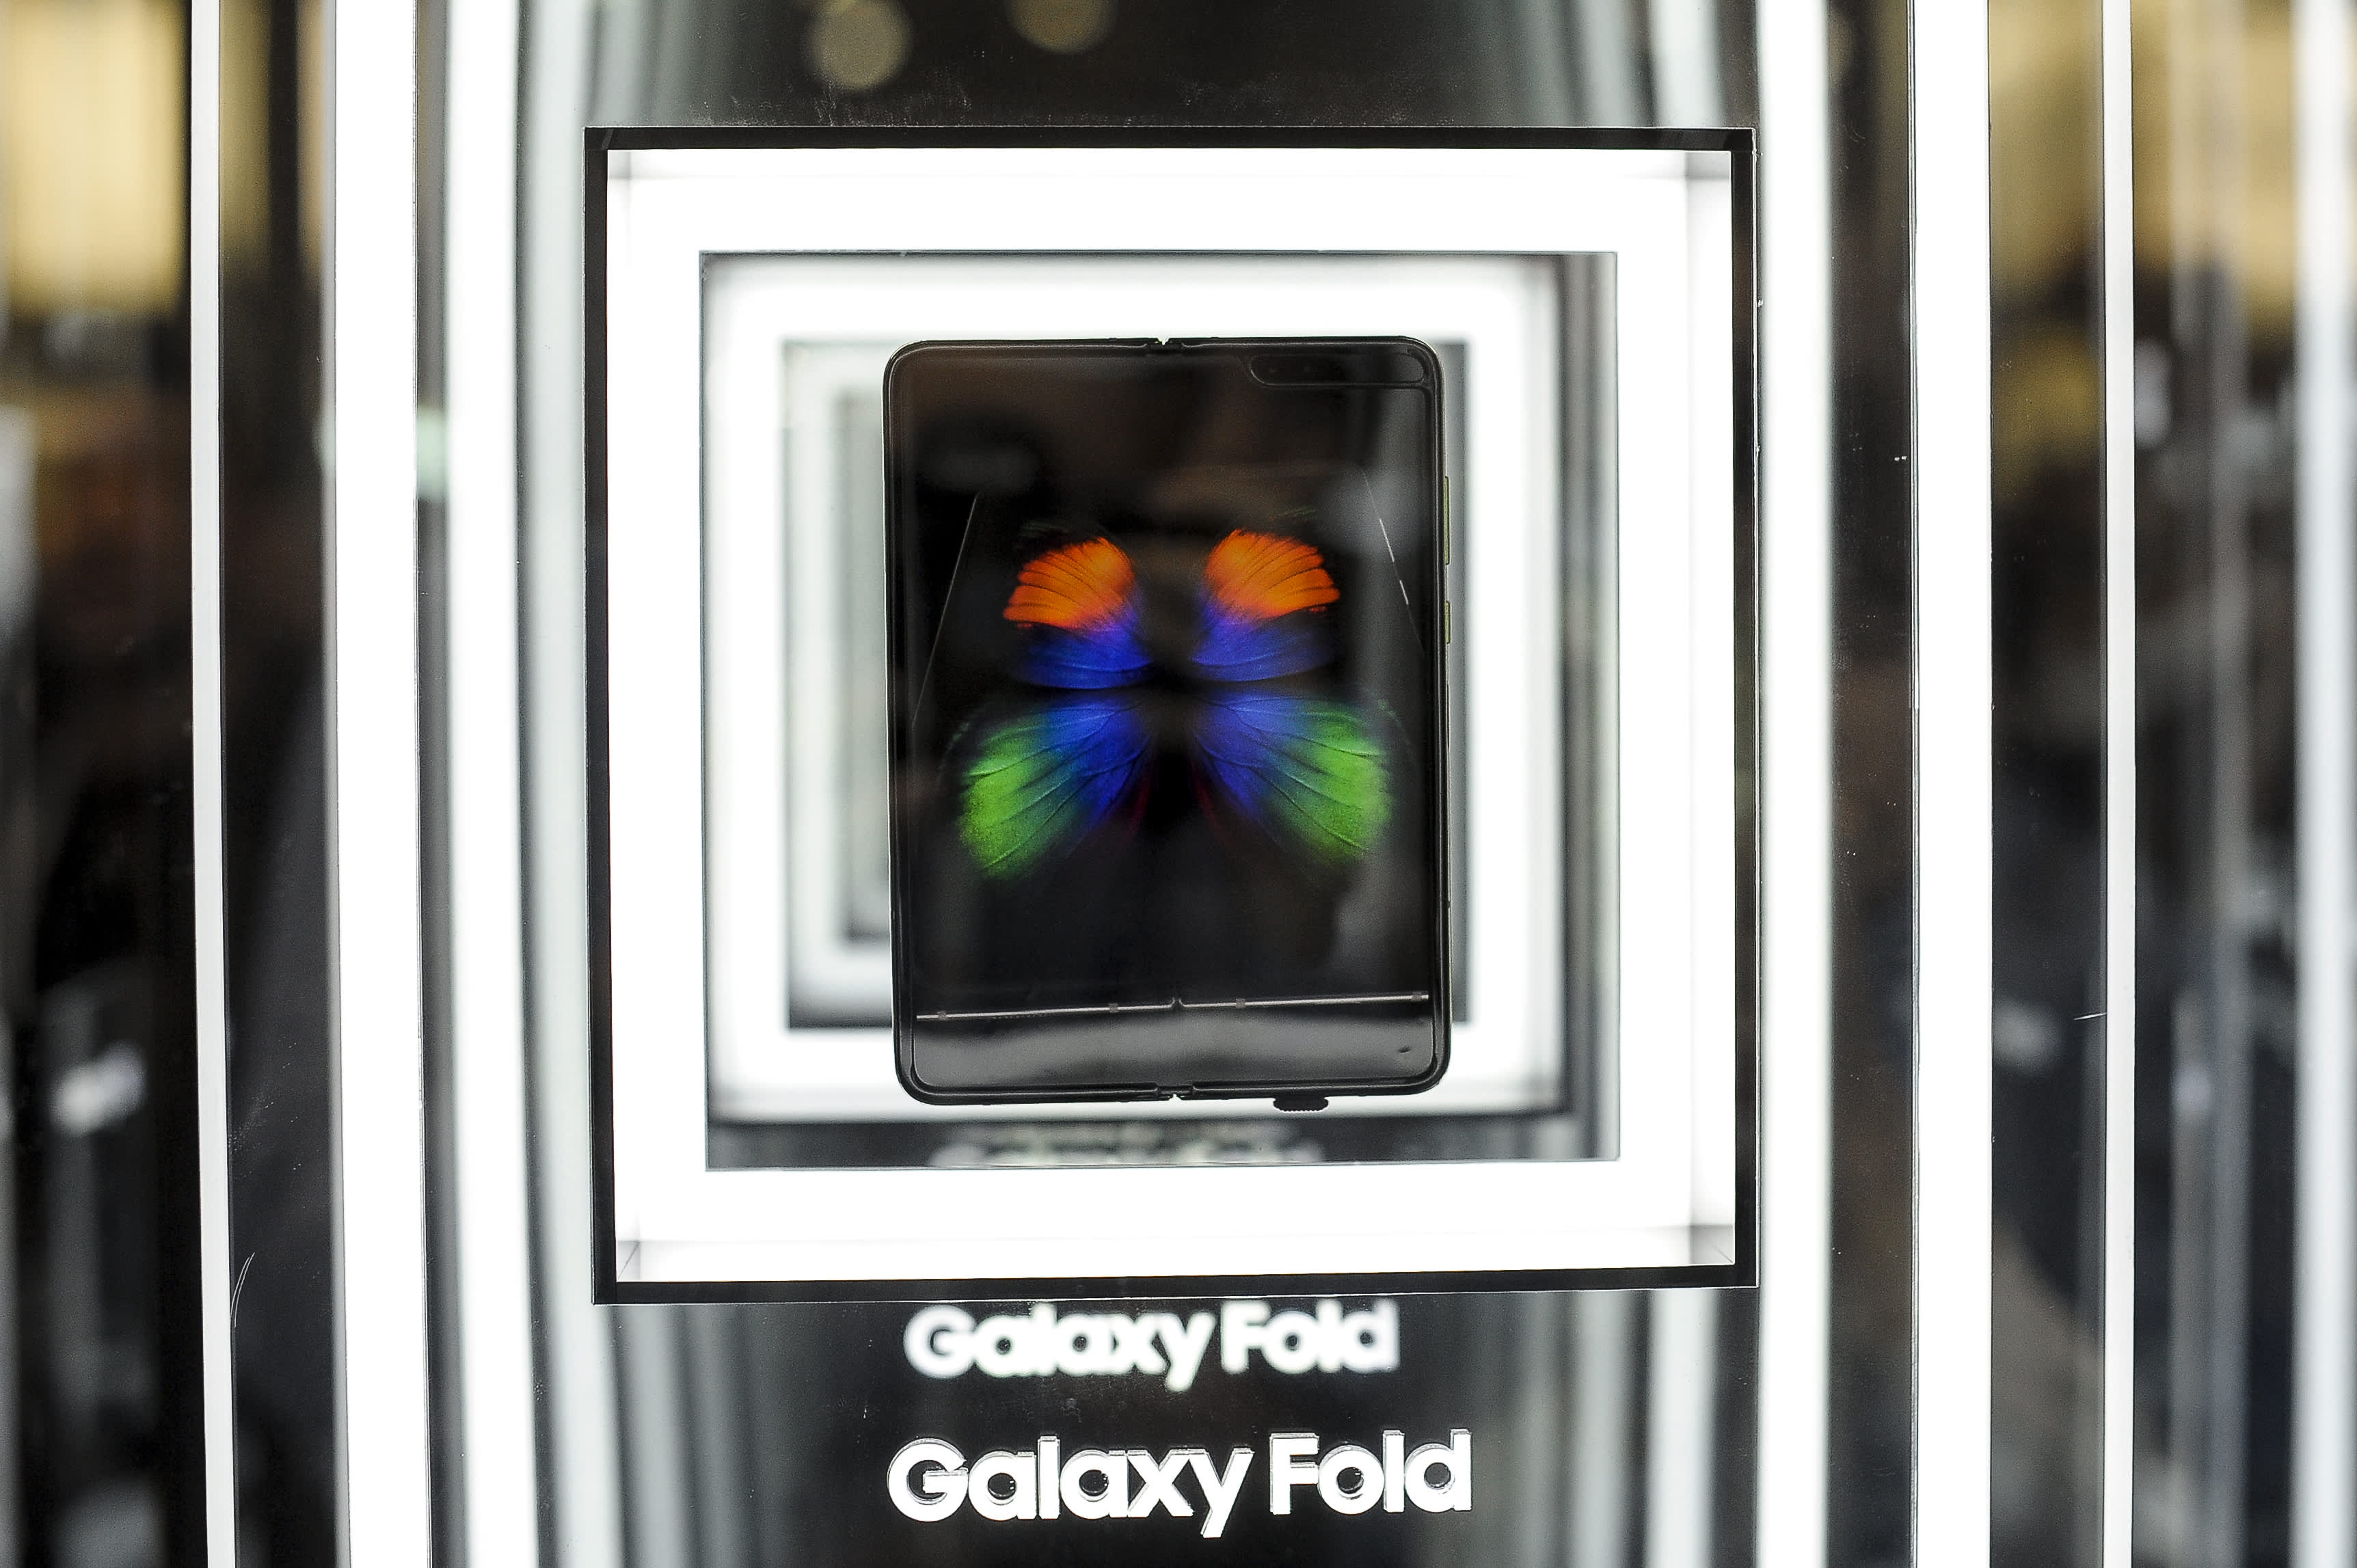 Samsung's Galaxy Fold smartphone to go on sale from Sept 6